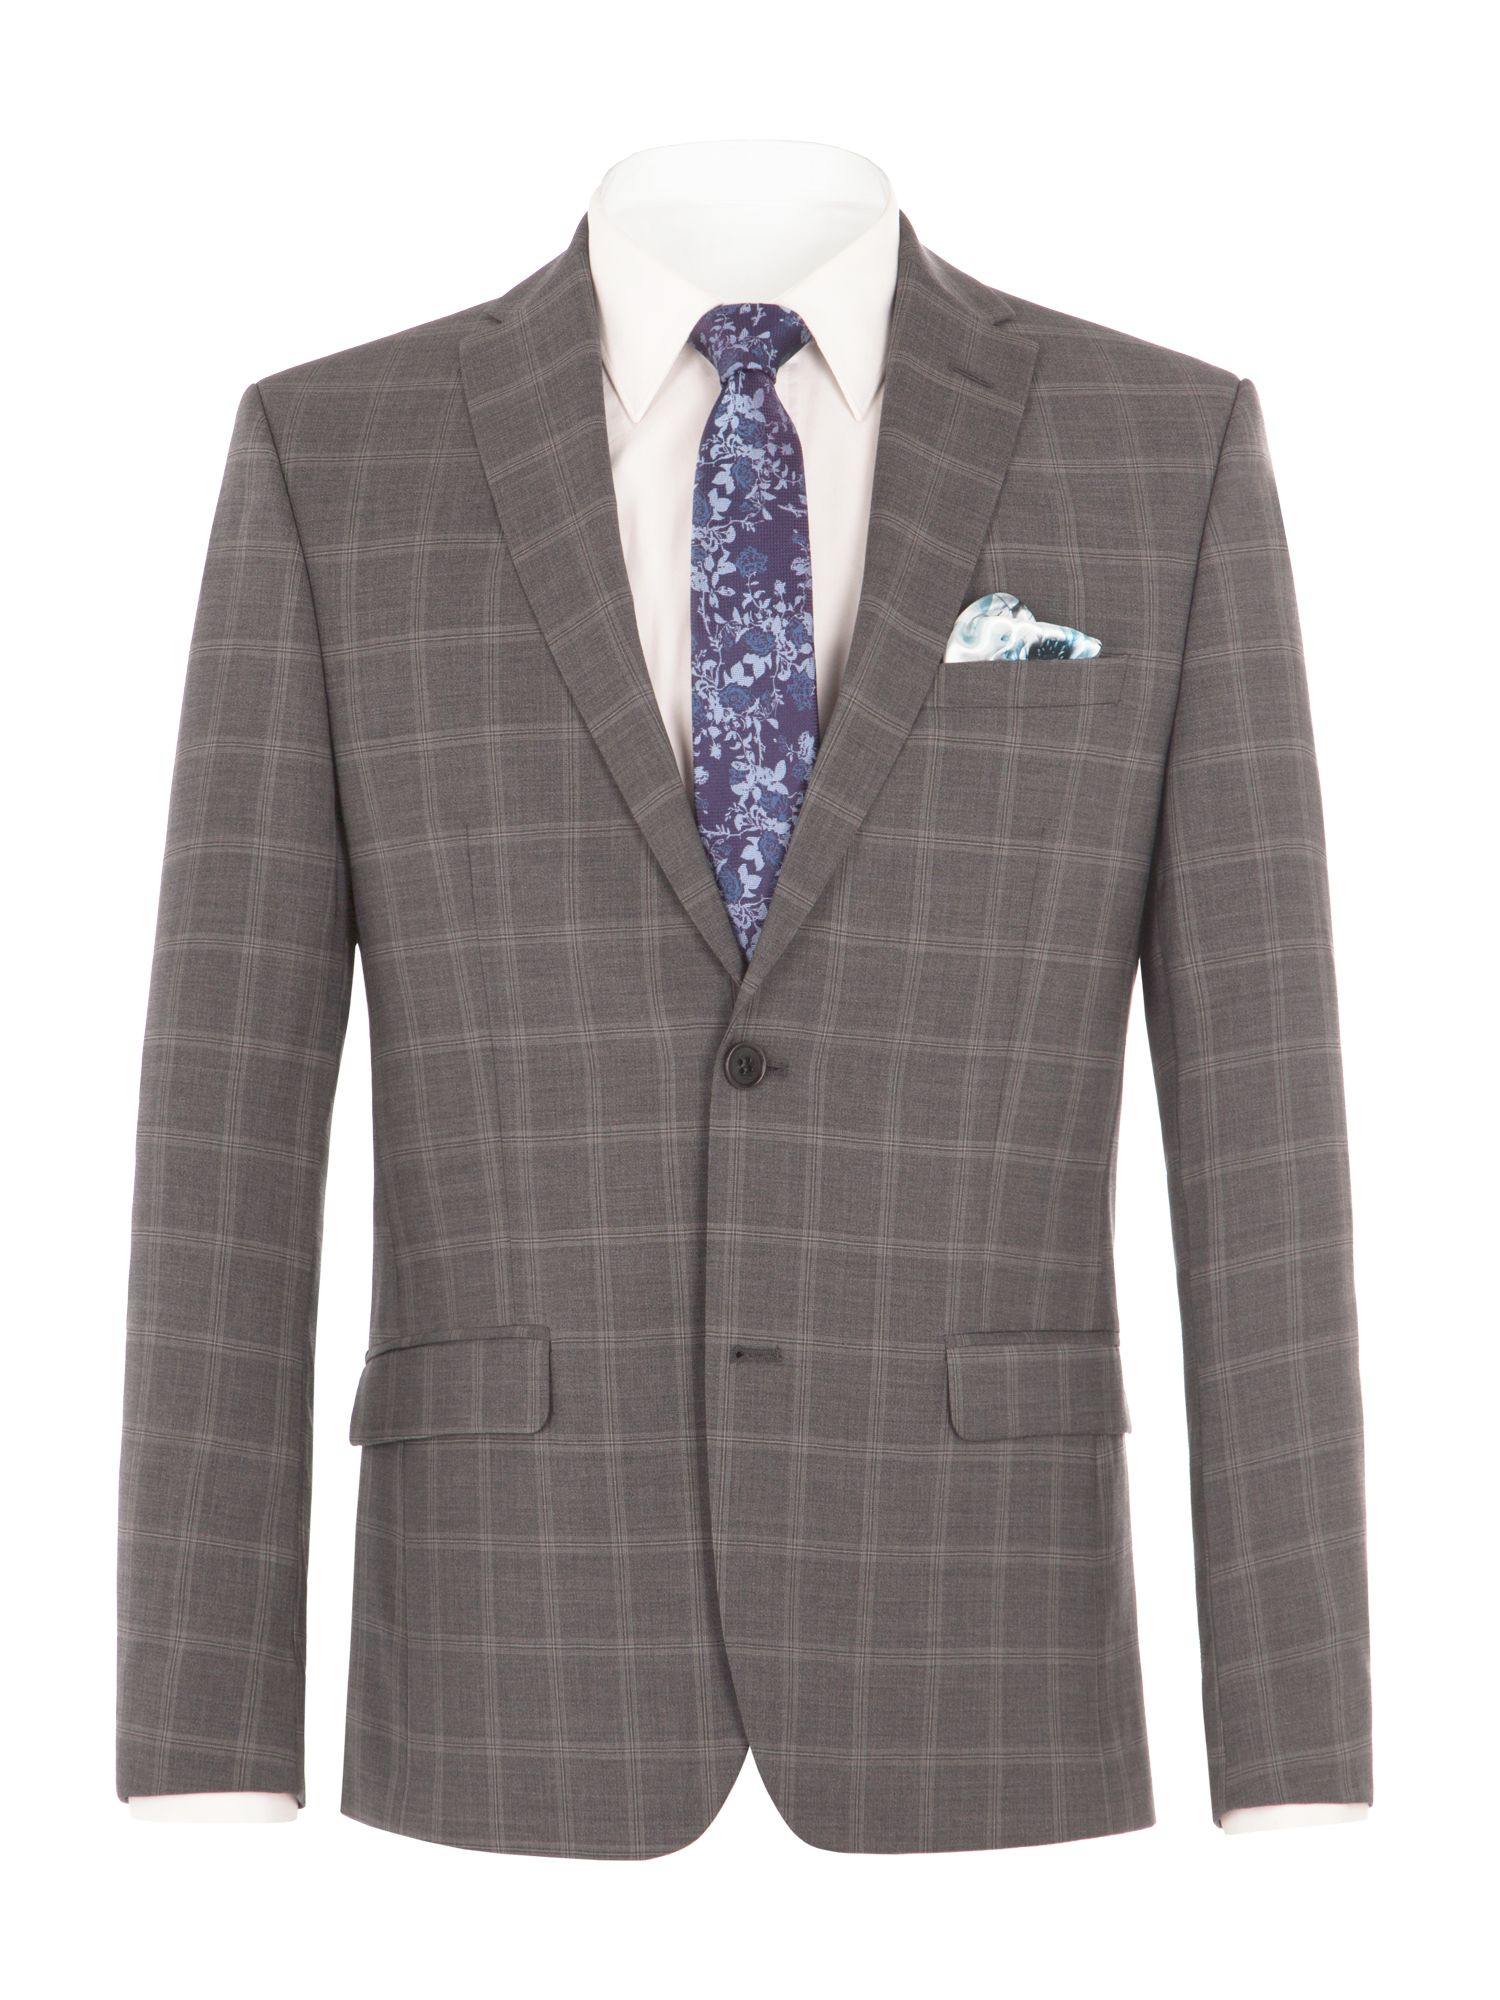 Alexandre of England Men's Alexandre of England Crosswall Grey Check Suit Jacket, Grey